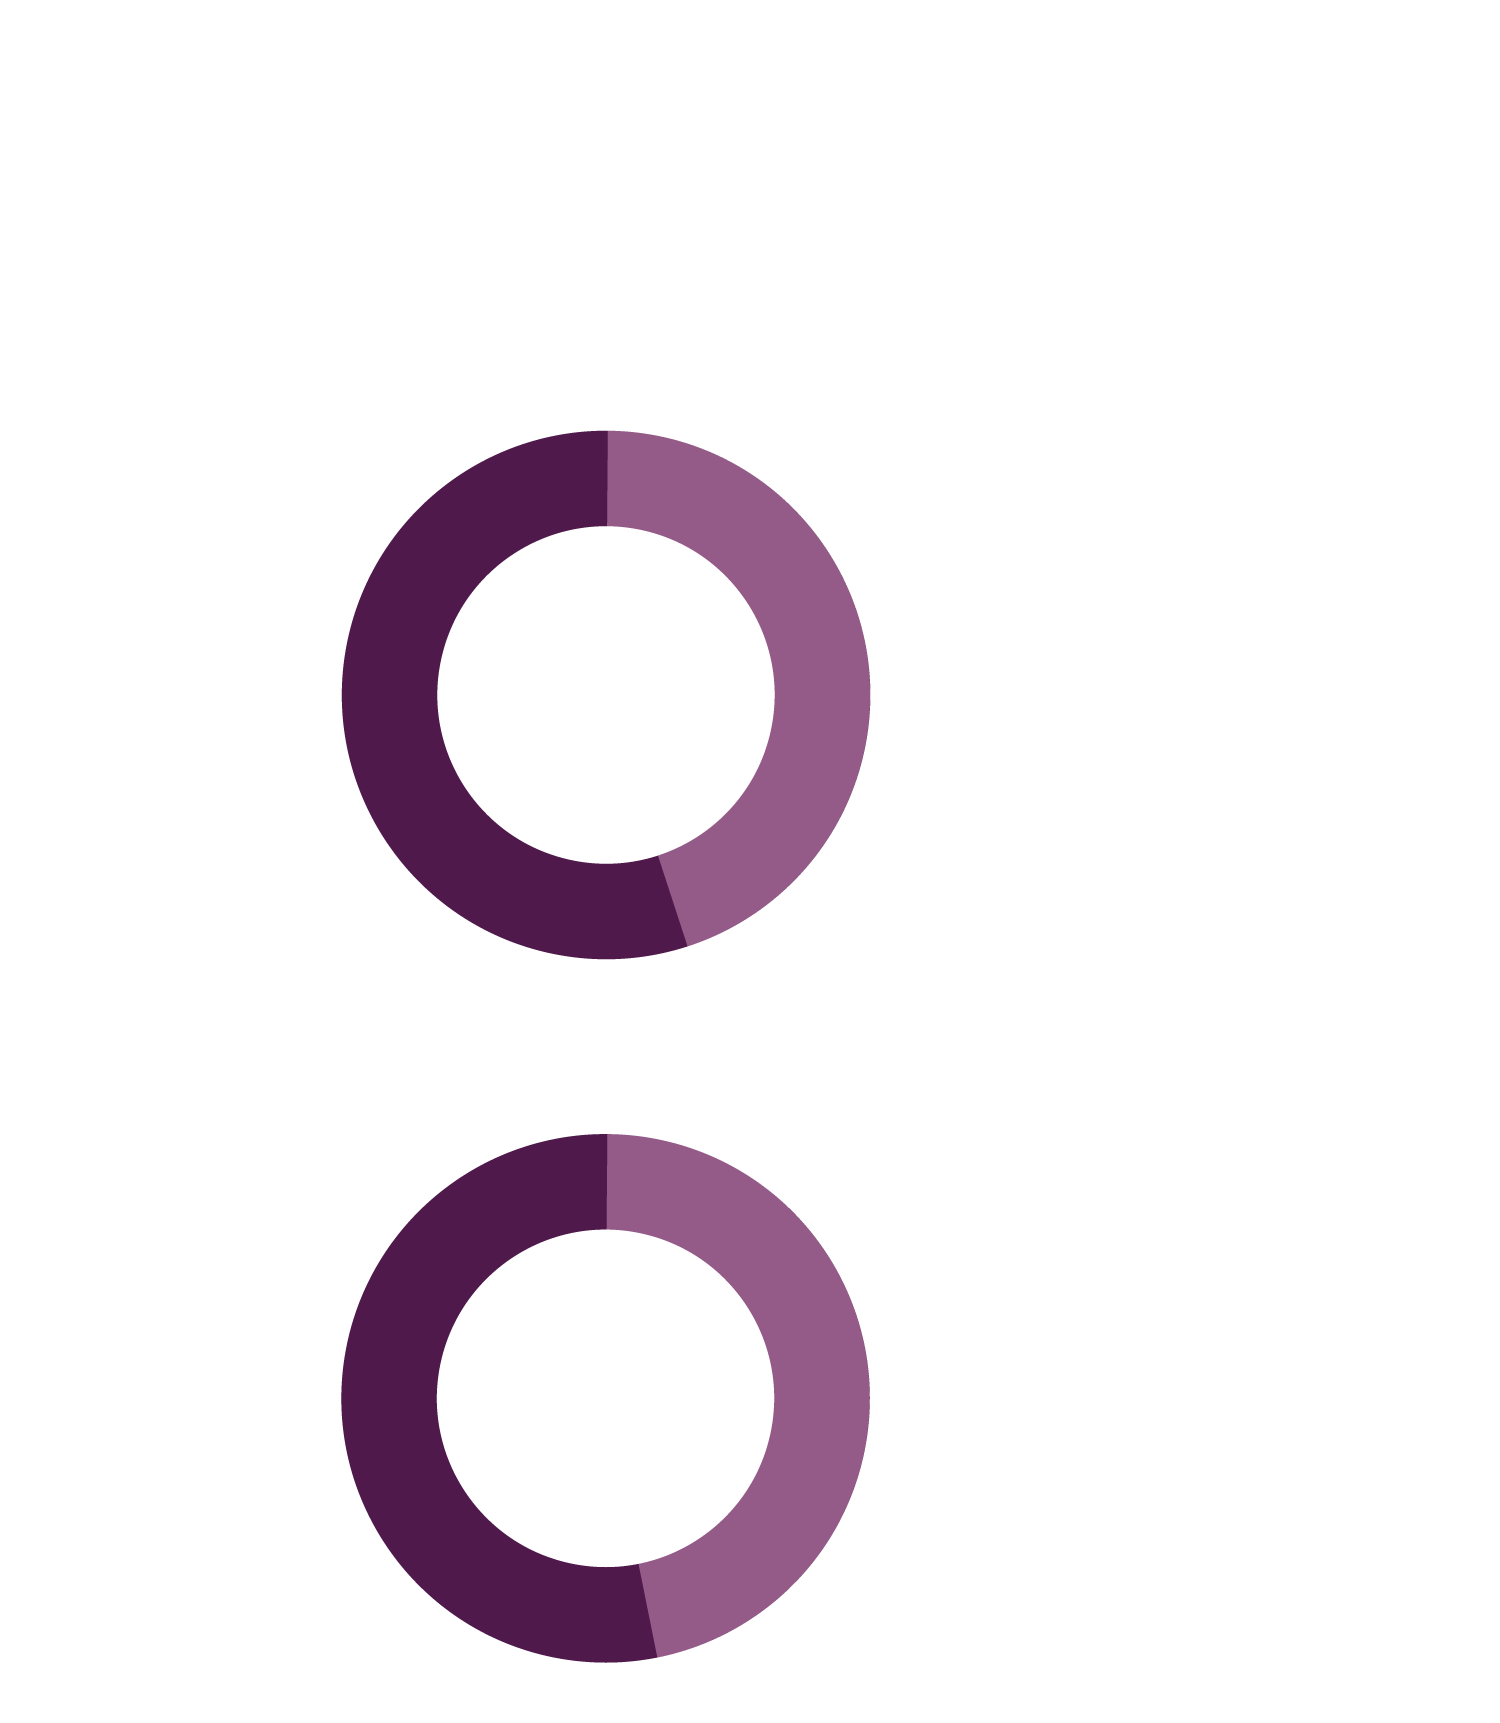 Escambia students earned more than $2 million in Pell Grants last year! | Comparison of 2017 and 2018 FAFSA completion rates